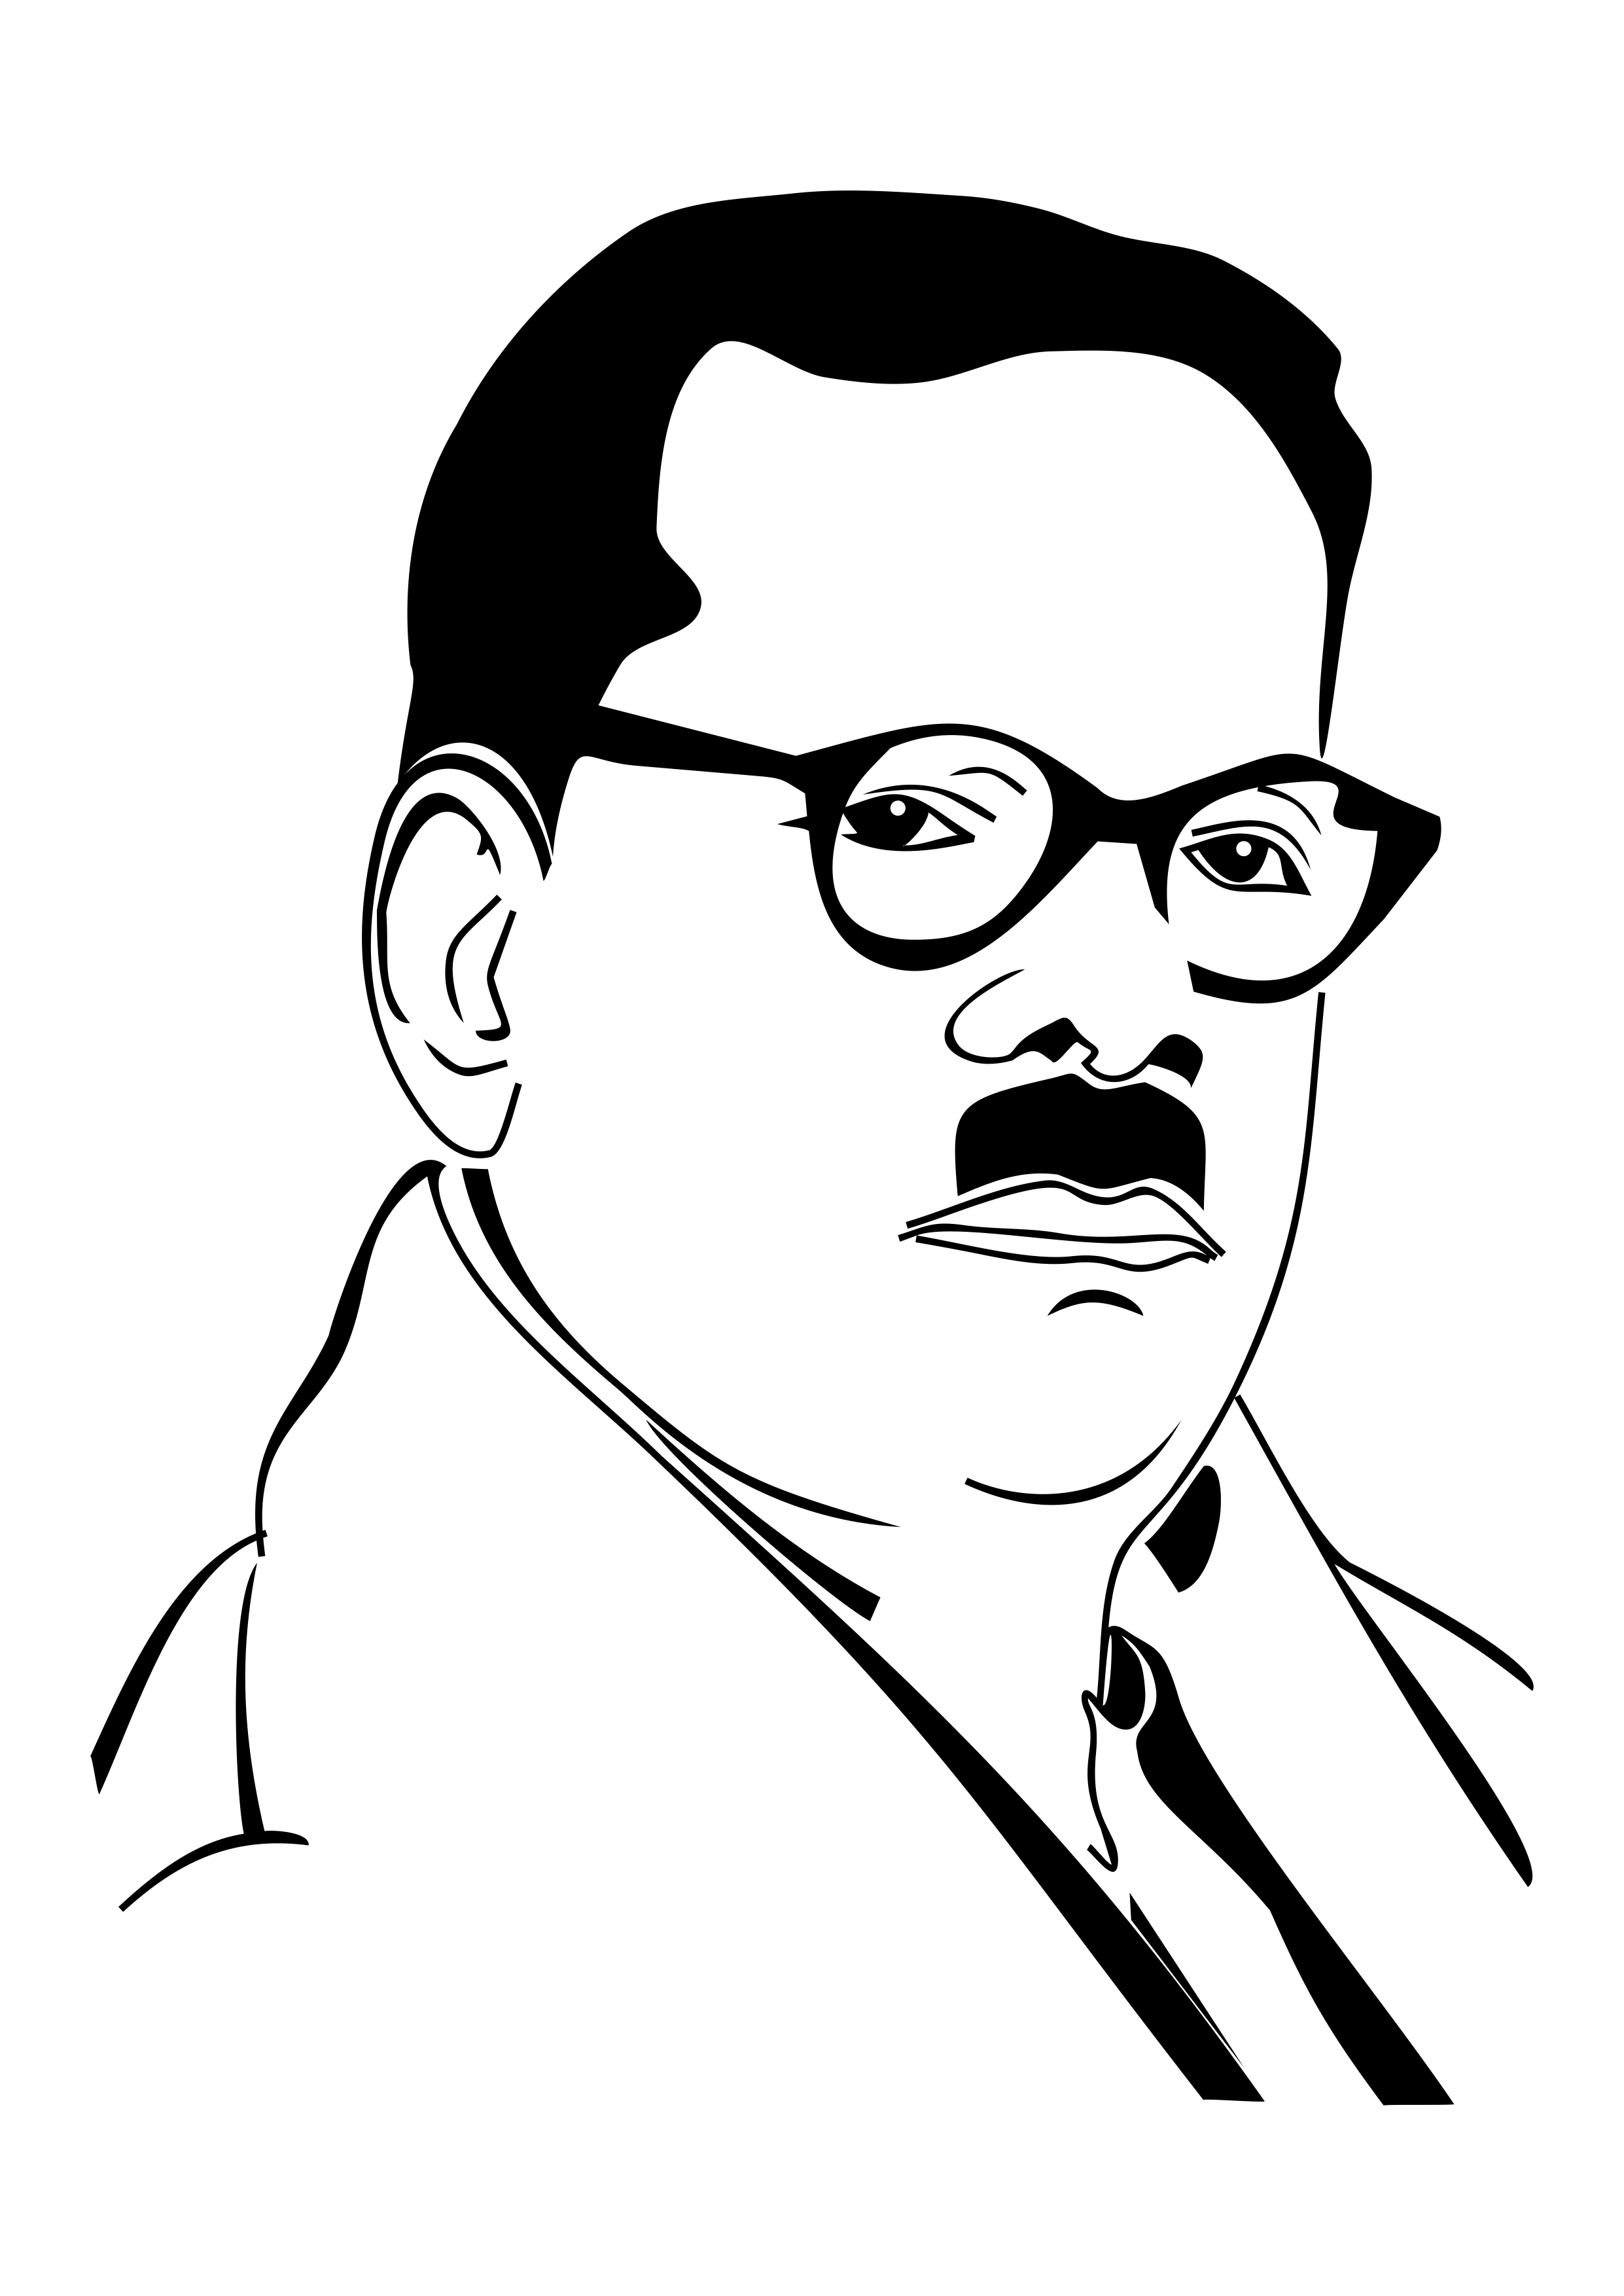 Free Vectors - People - Download free - Tamil Poet Bharathidasan Vector Image